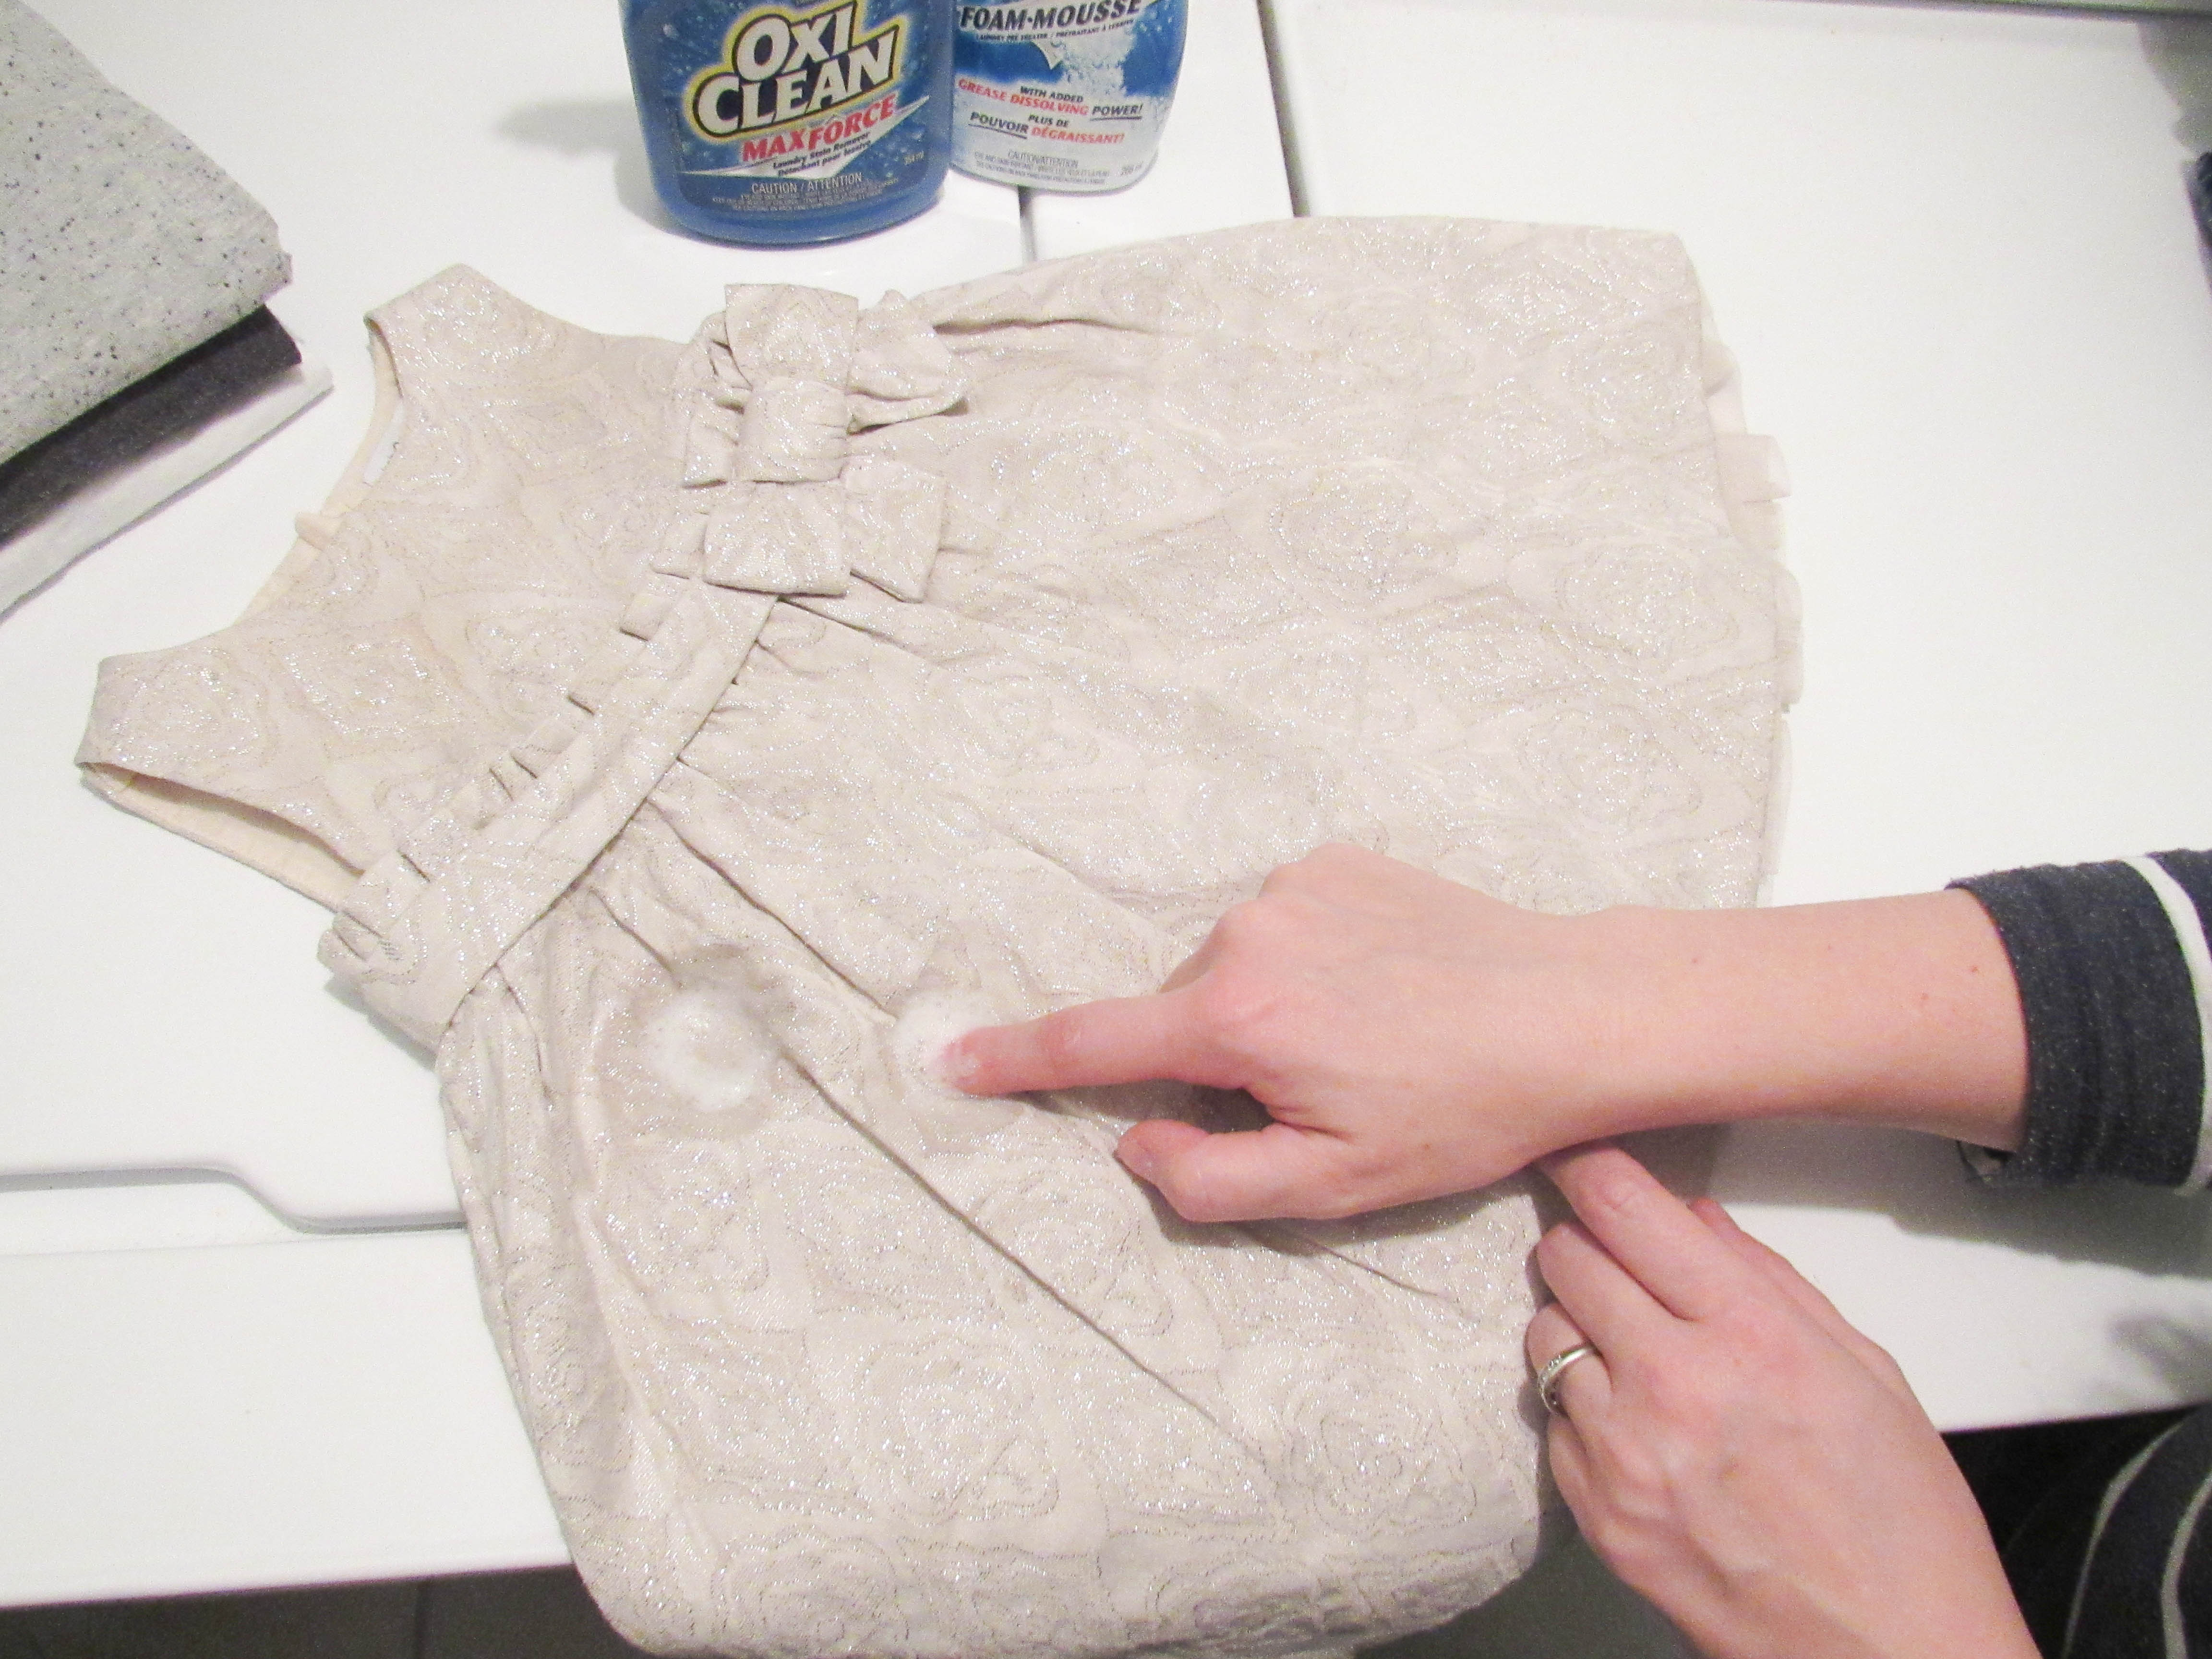 How to get stains out with OxiClean